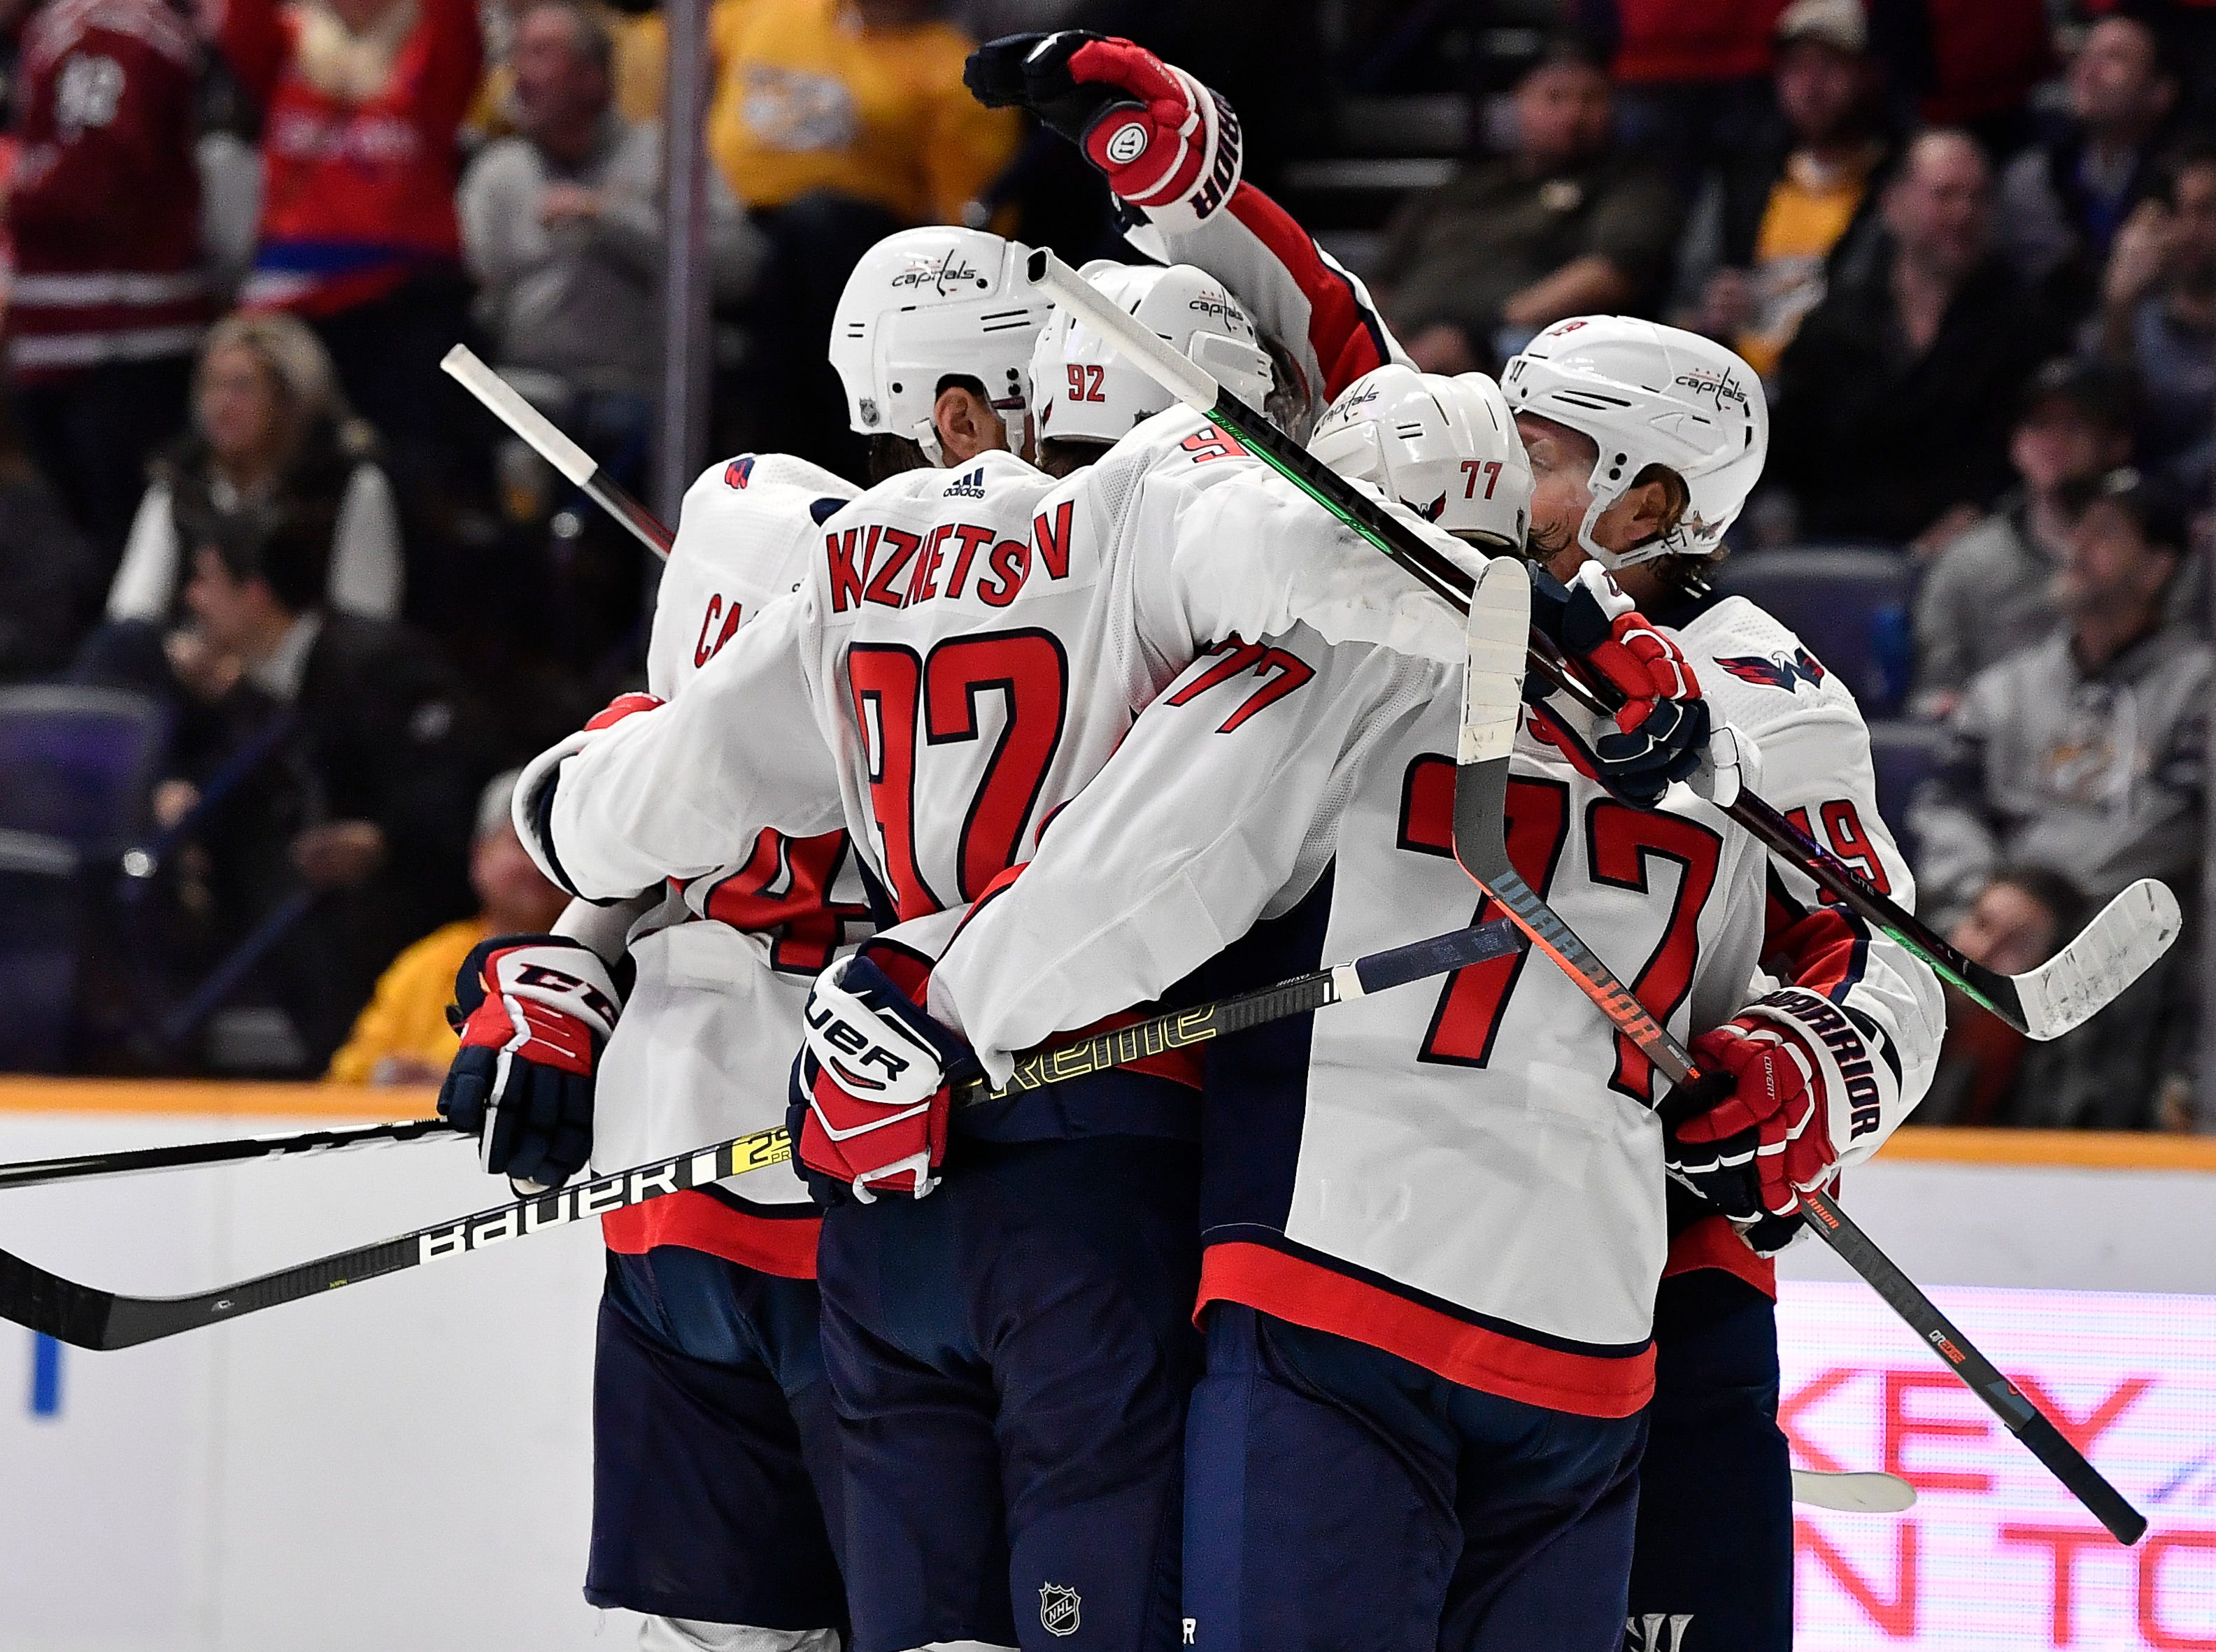 Capitals celebrate their goal by center Nicklas Backstrom (19) during the second period against the Predators at Bridgestone Arena Tuesday, Jan. 15, 2019, in Nashville, Tenn.